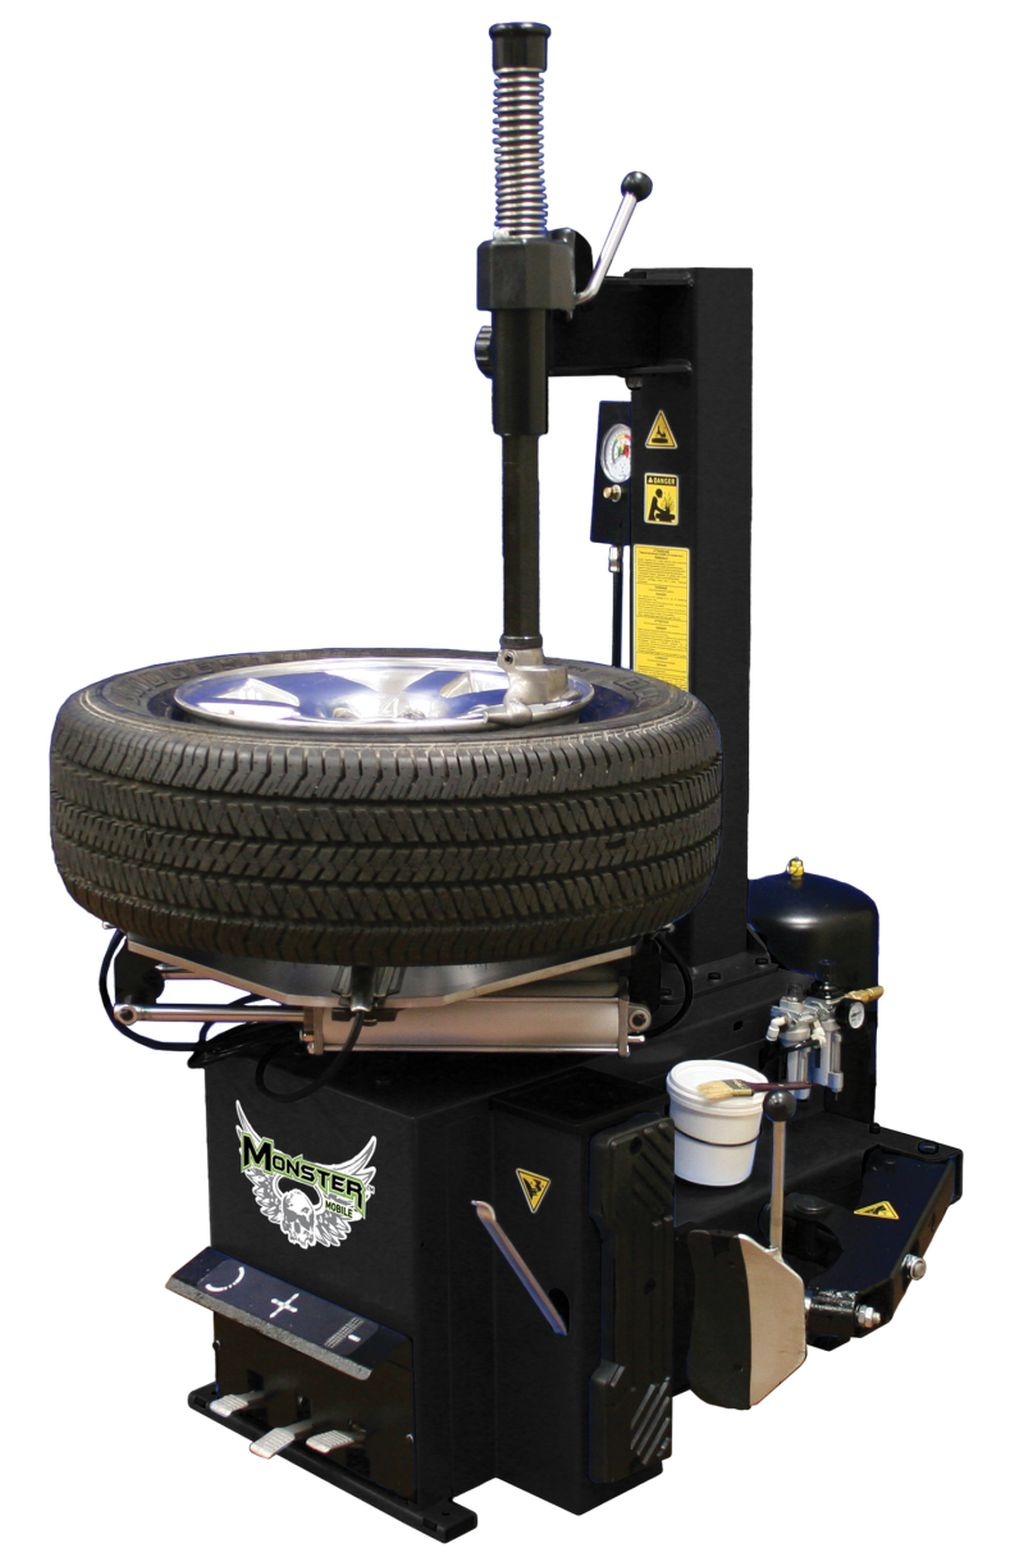 New Swing Arm Tire Changer From Monster Brand